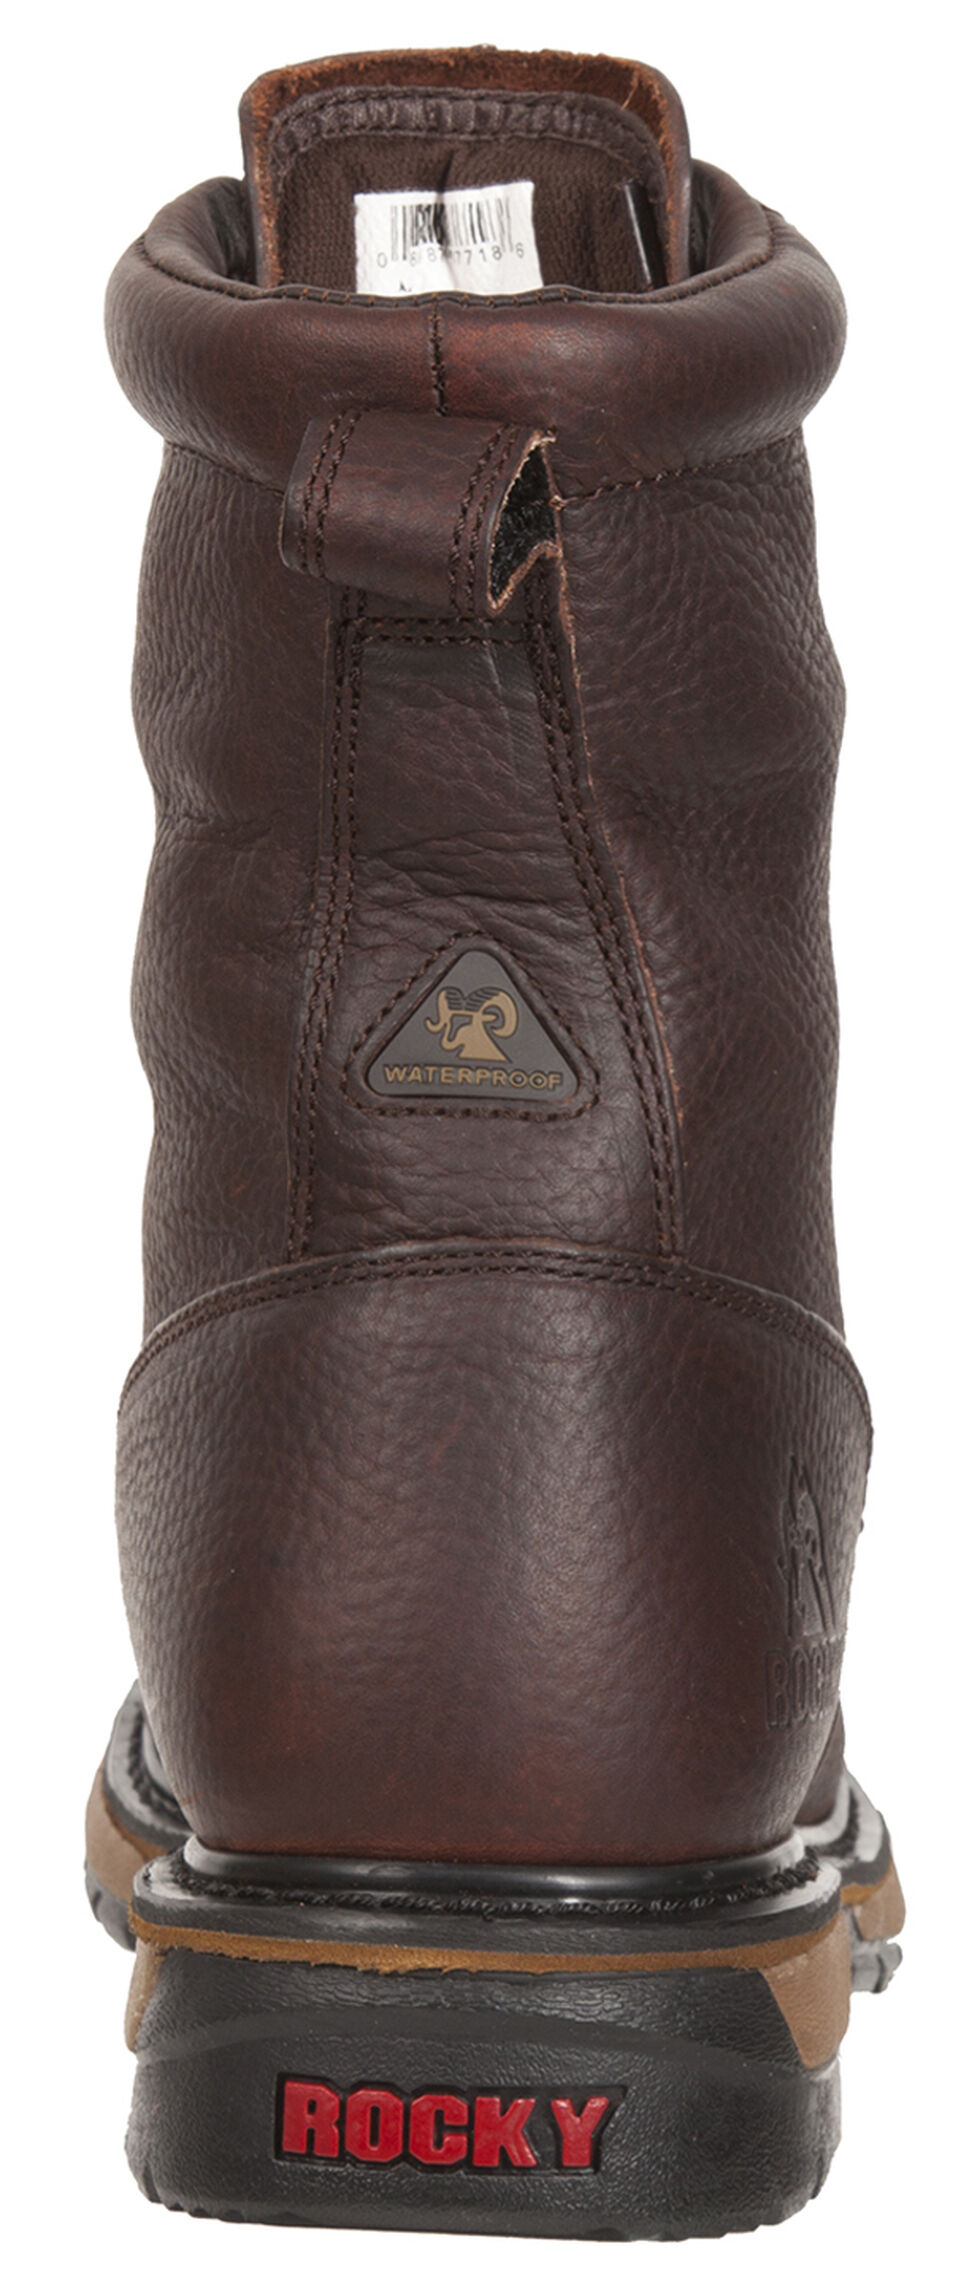 Rocky Original Ride Waterproof Western Lacer Boots - Safety Toe, Dark Brown, hi-res